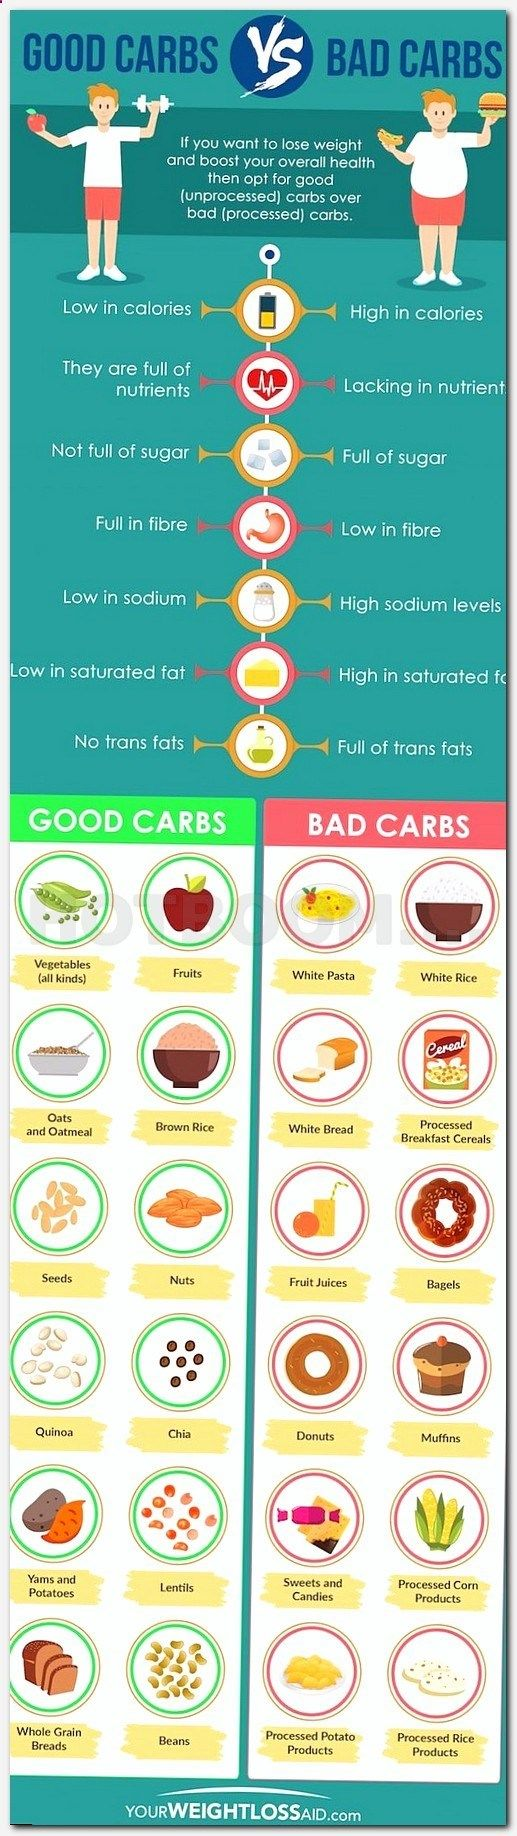 top food, celebrity fast diets, mayo clinic paleo diet, best to lose belly fat, reduce weight post pregnancy, express, success weightloss systems, proper weight loss diet plan, flat belly diet plan, lose 10lbs in 3 days diet plan, lean meal plan bodybuild